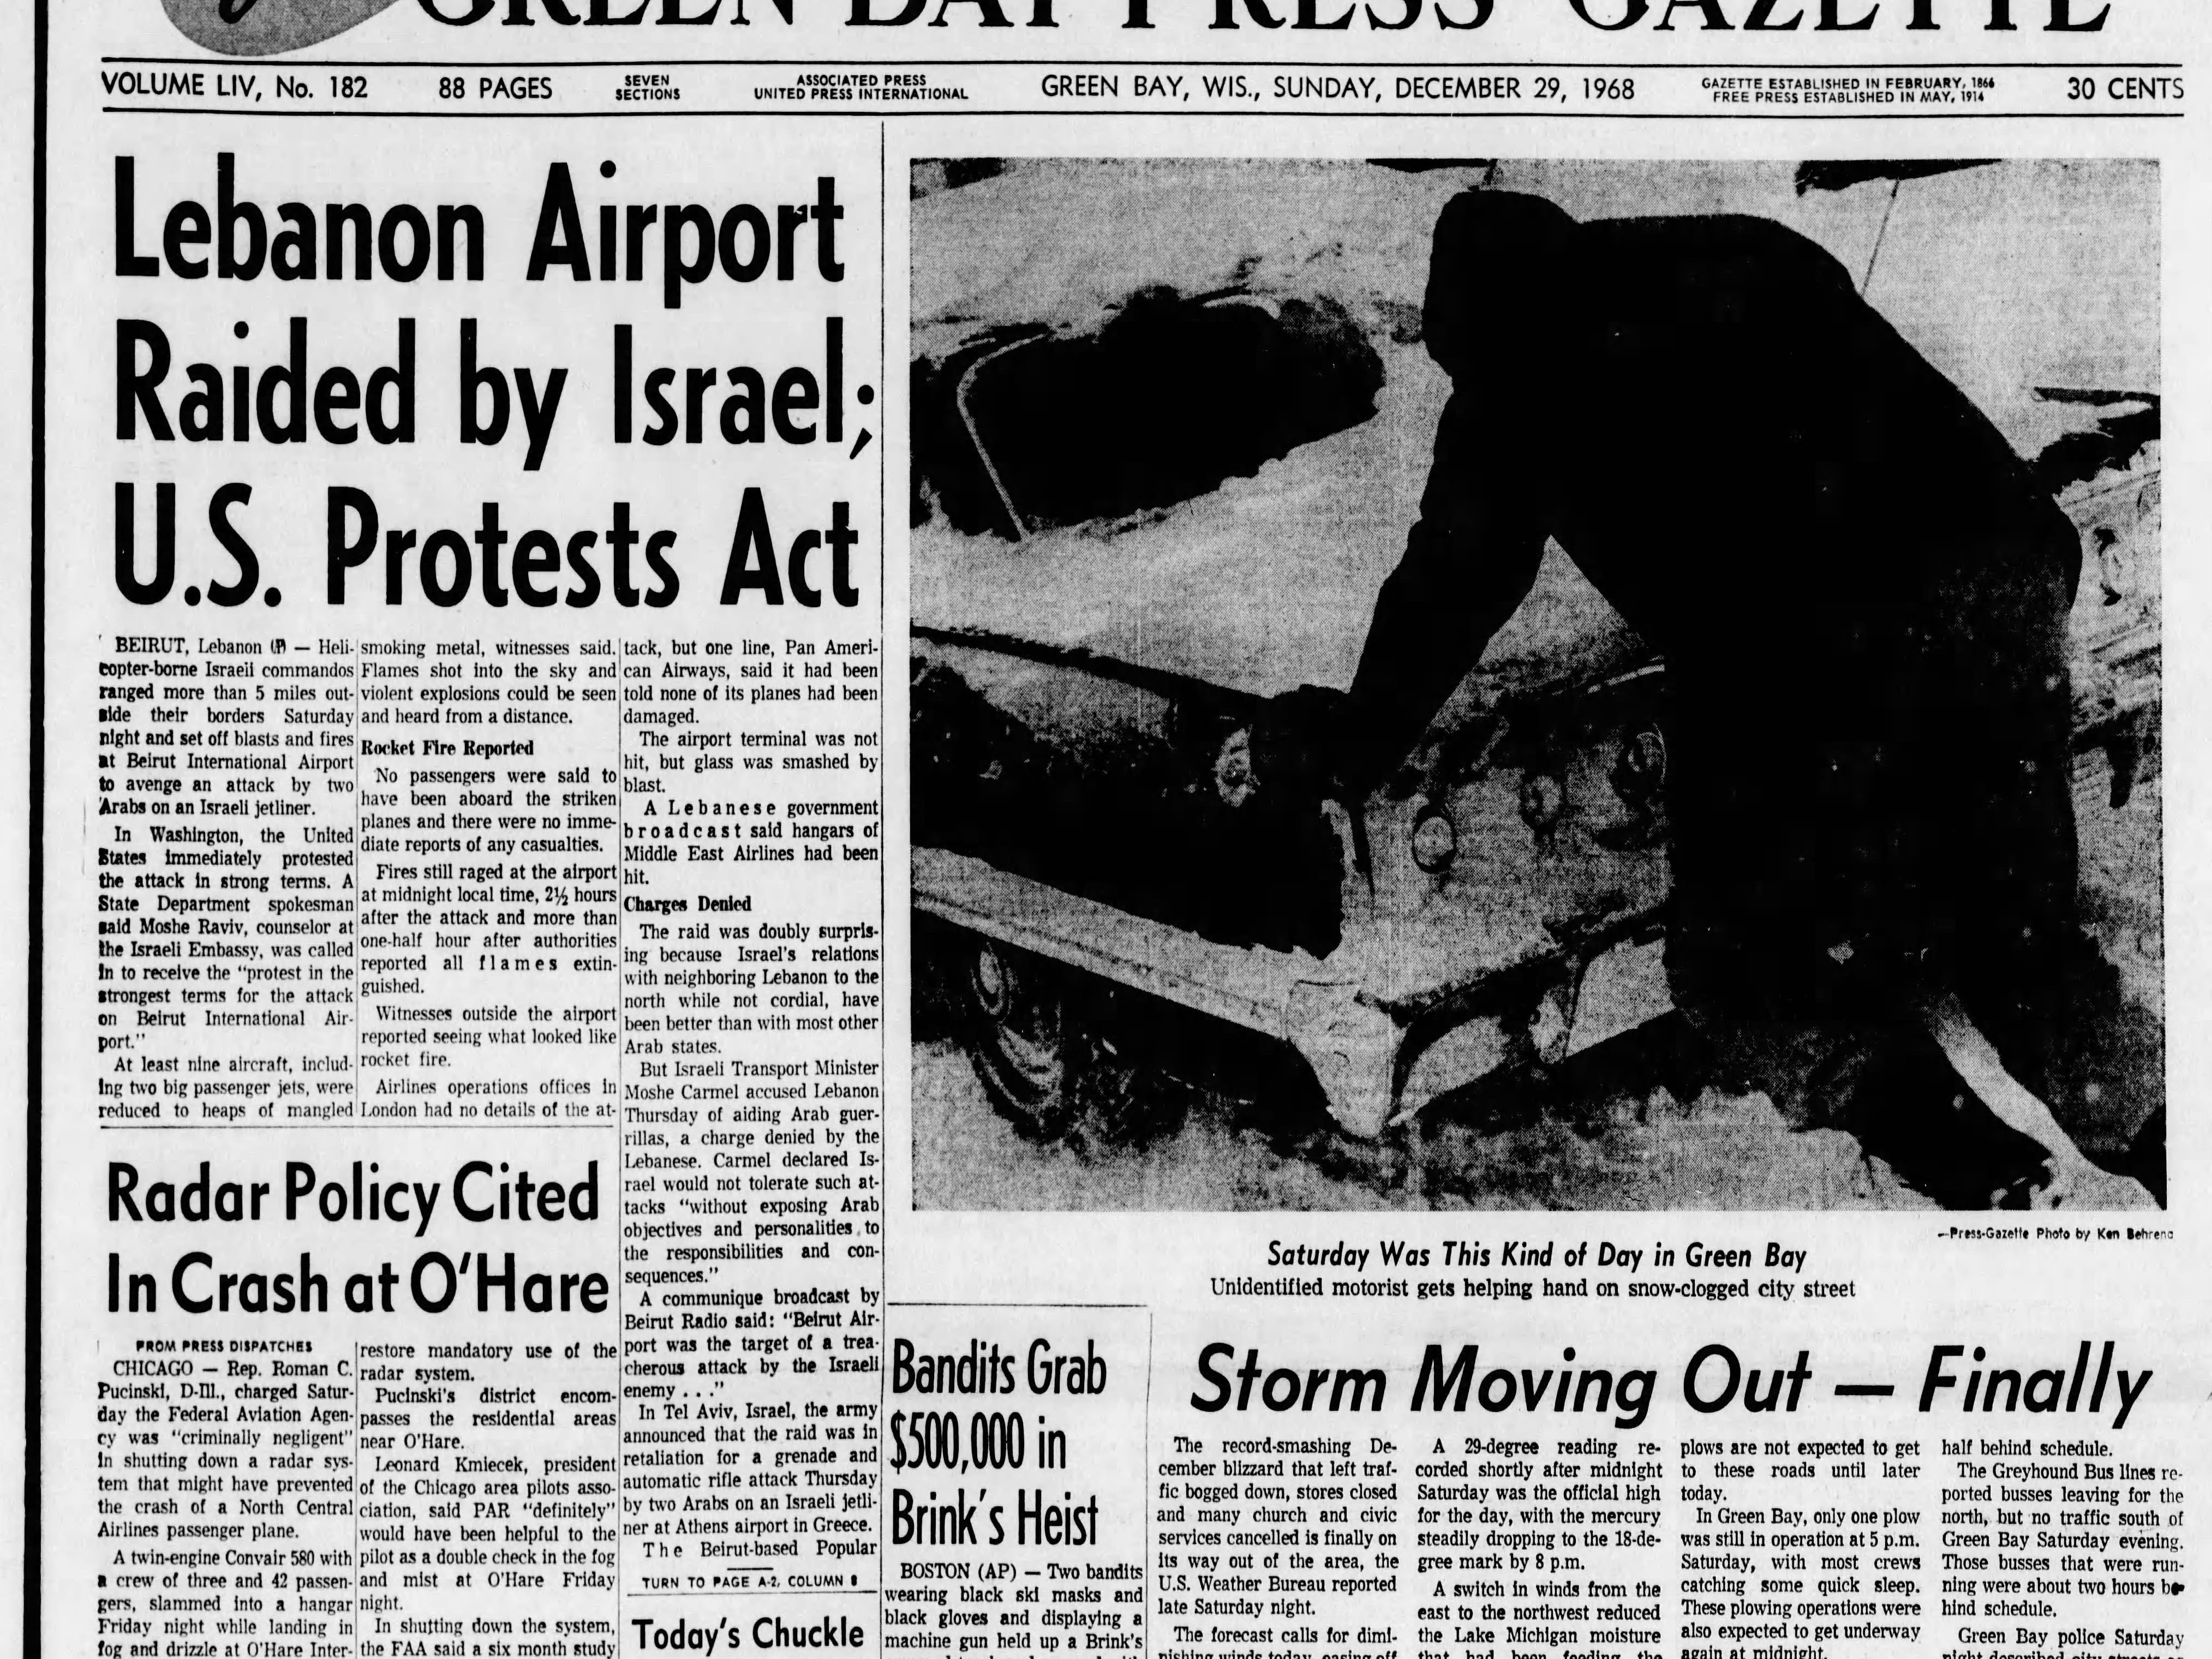 Today in History: Dec. 29, 1968